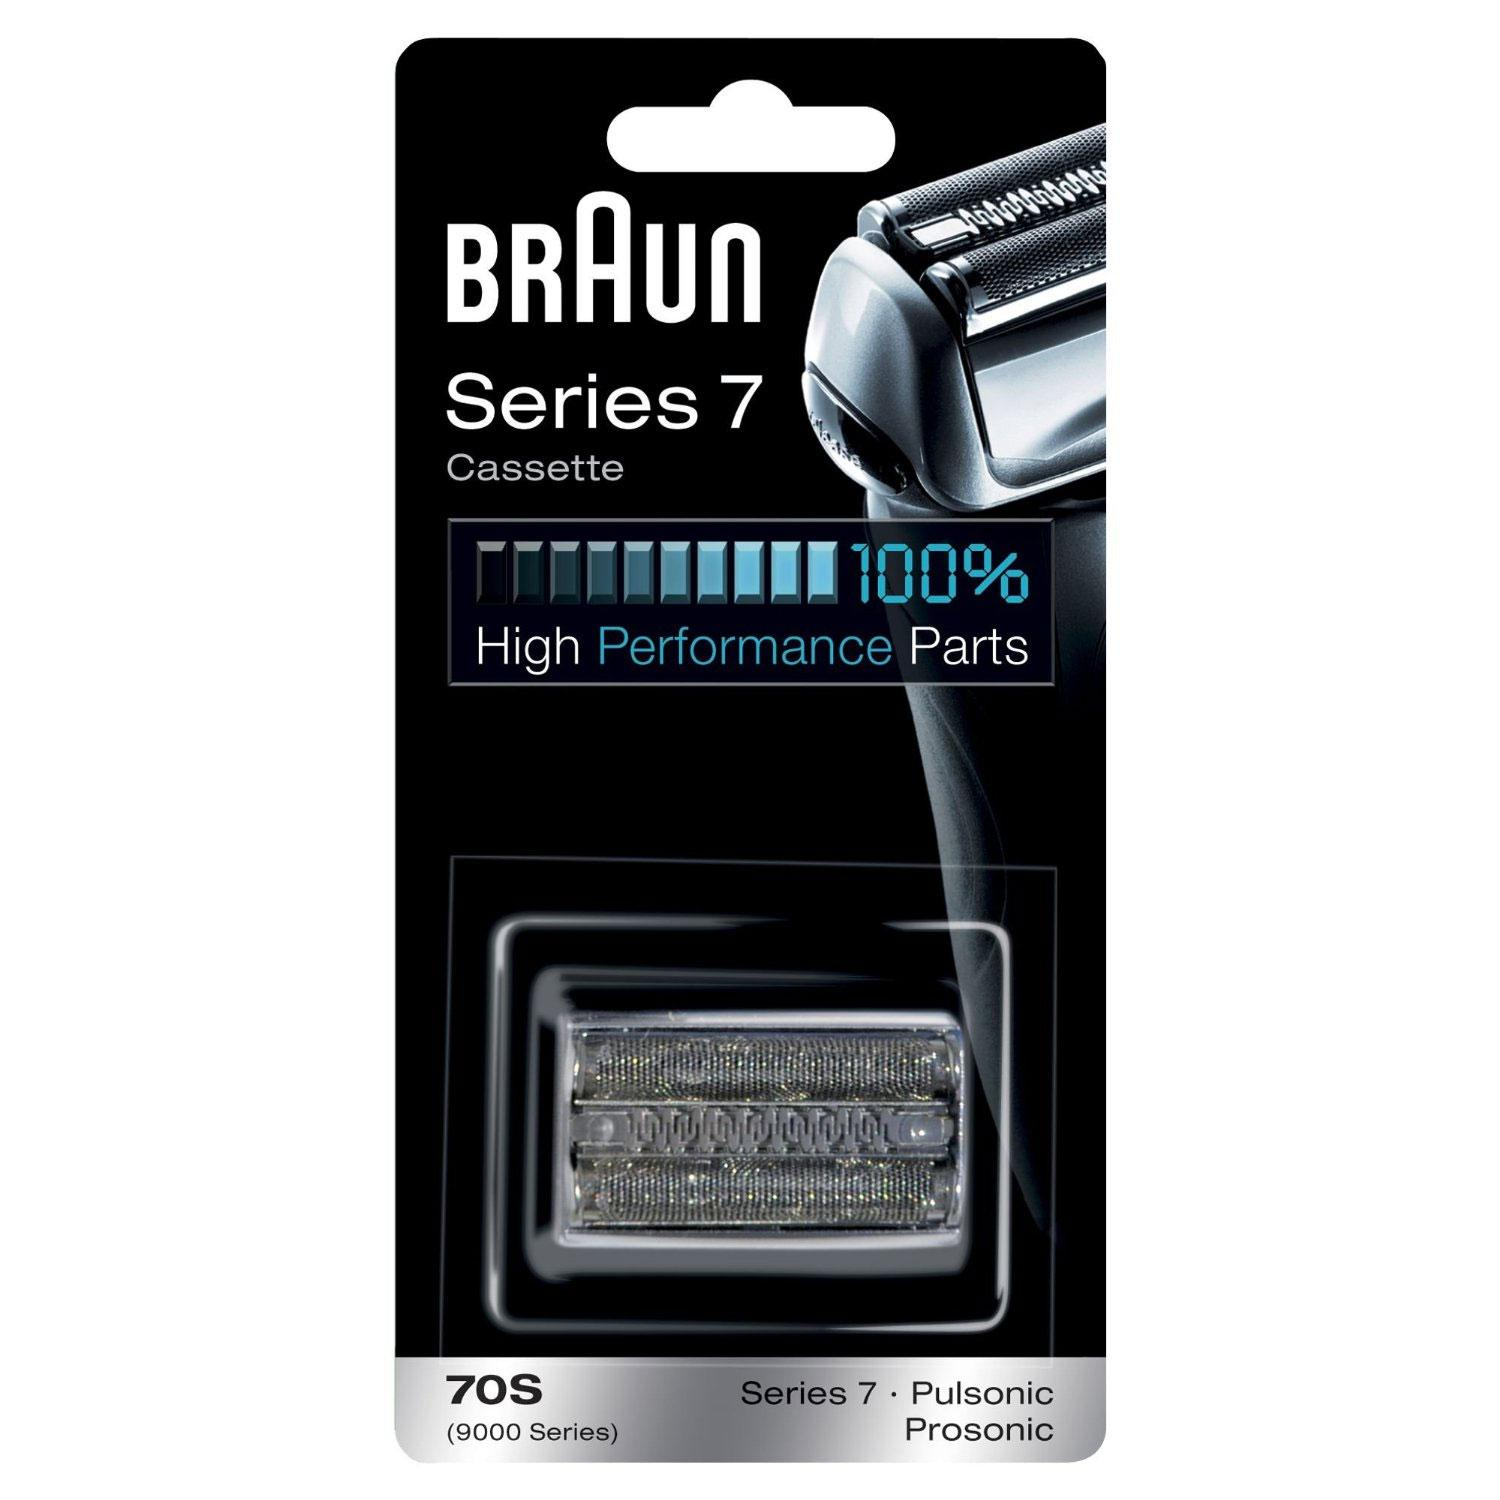 Braun 70S Series 7 Electric Shaver Replacement Foil and Cassette Cartridge - Silver